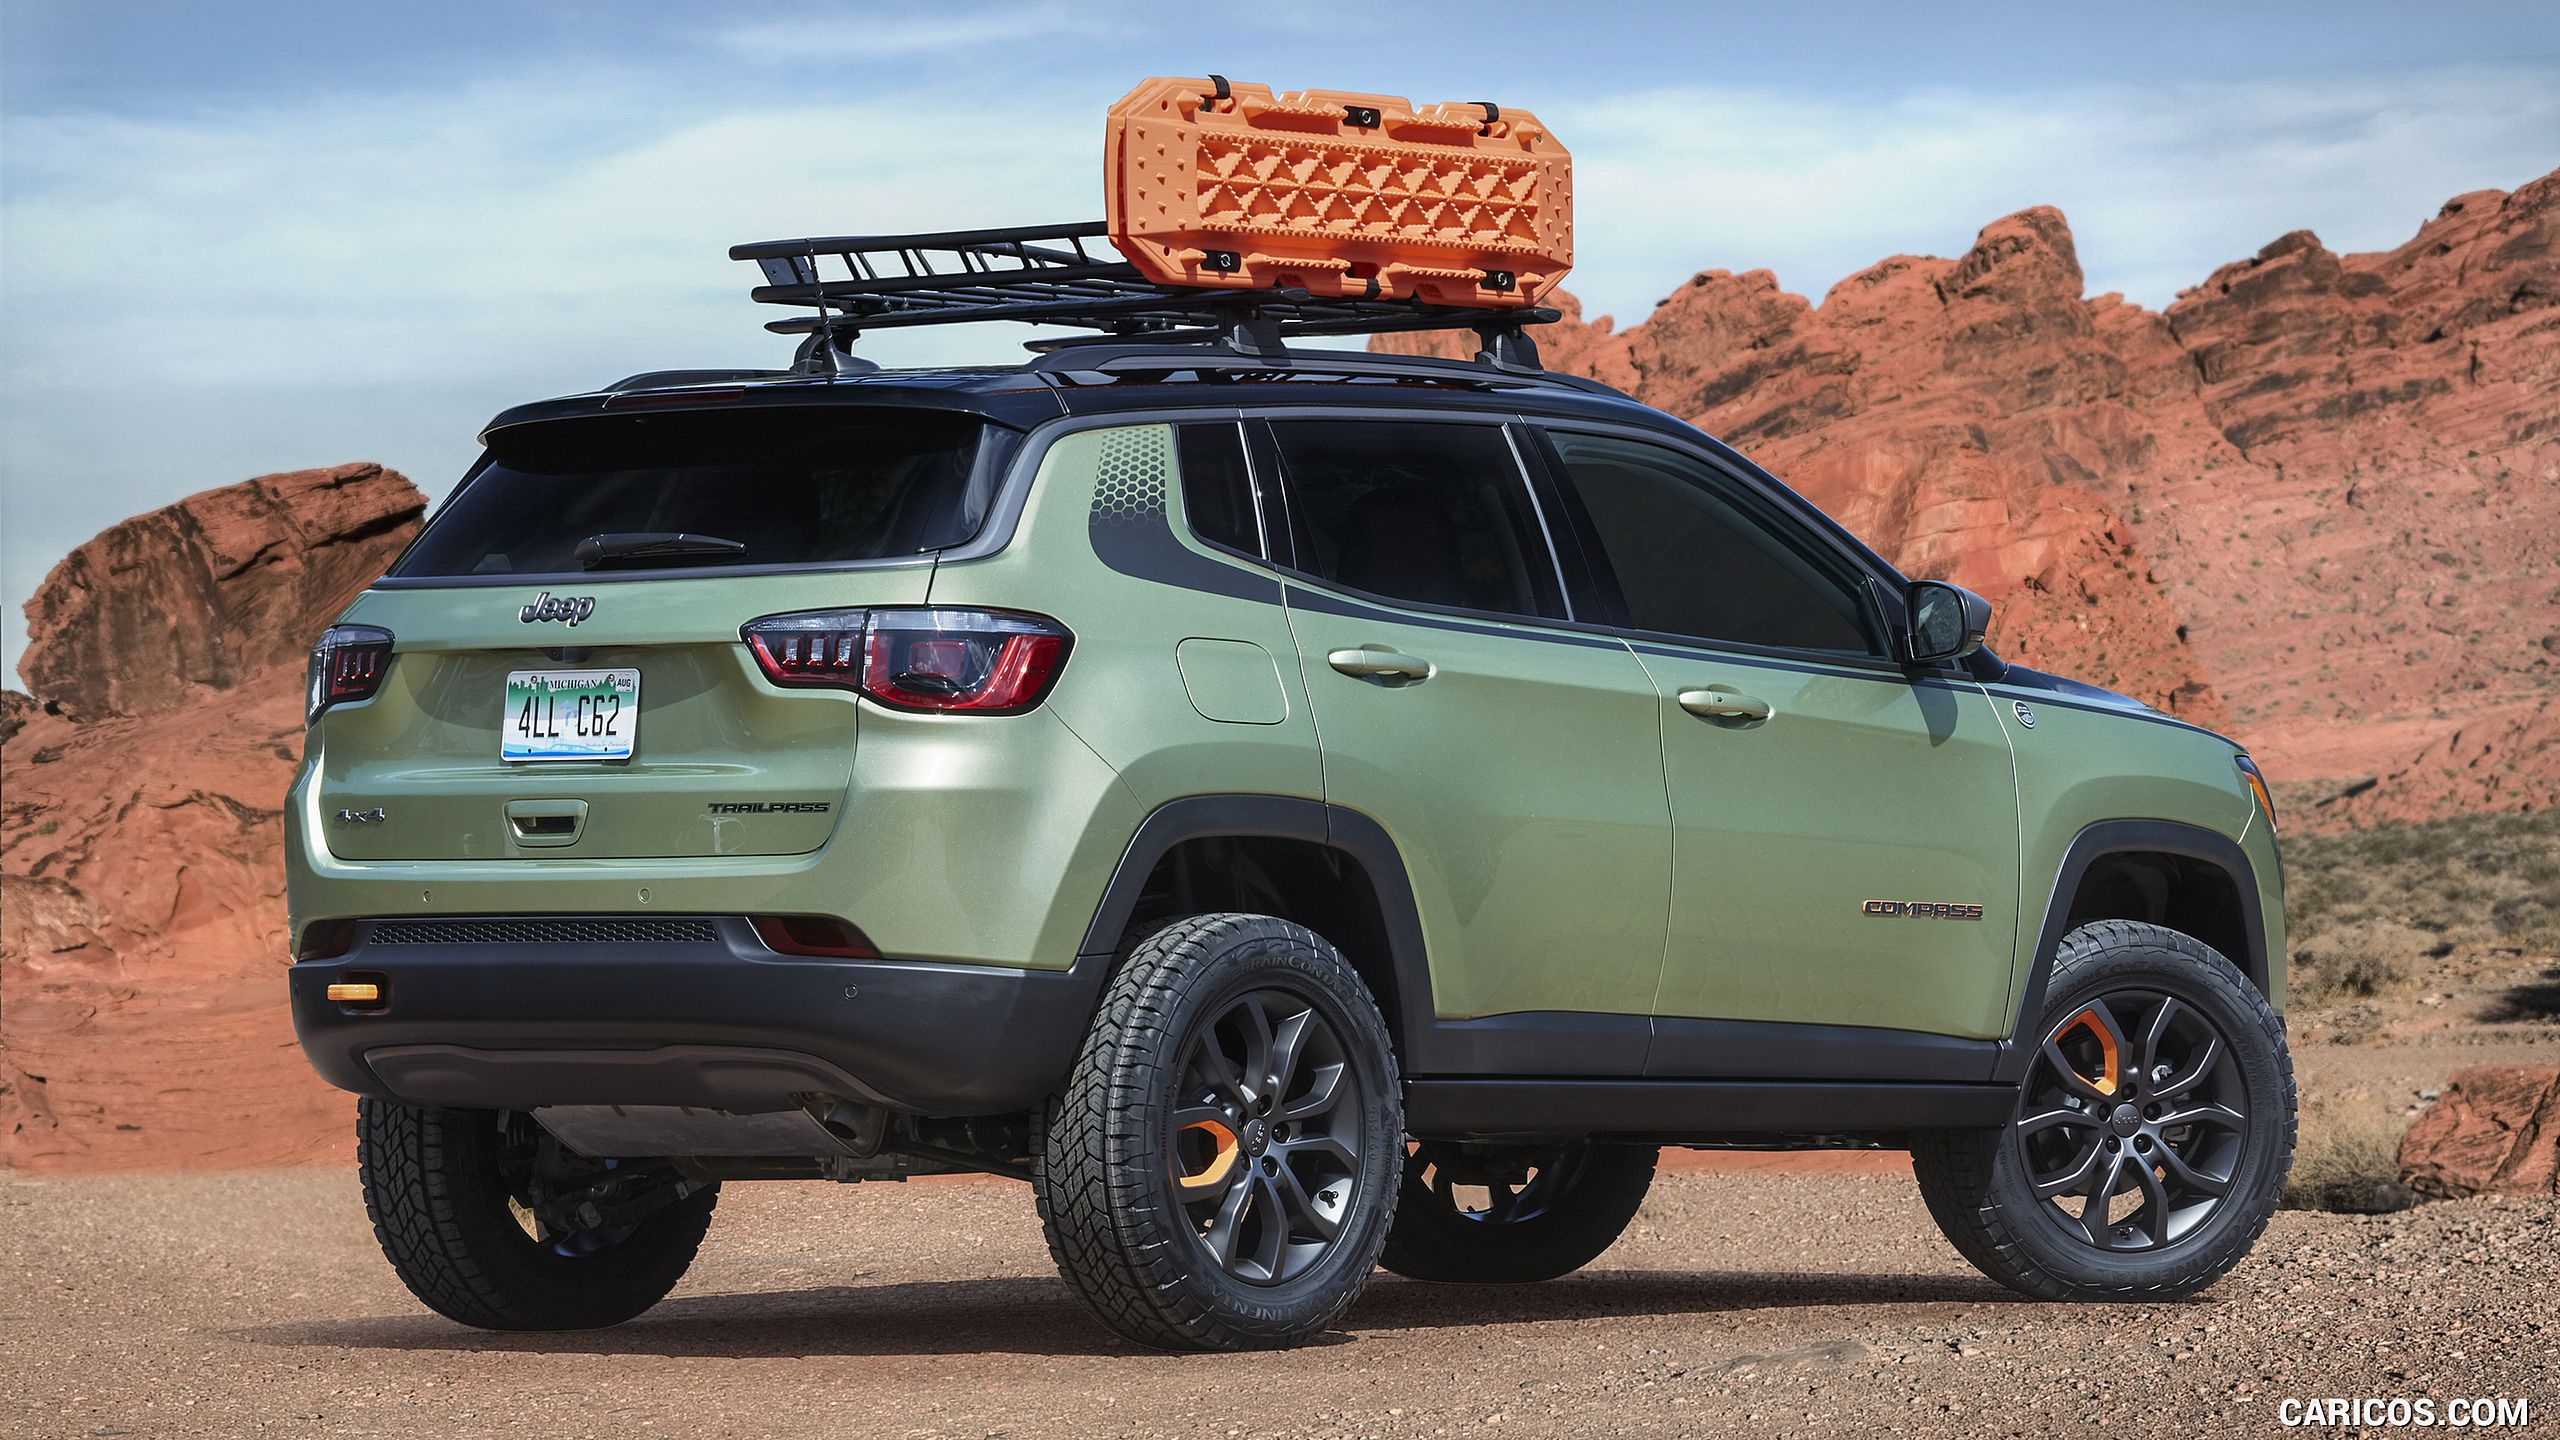 Pin By Ferrizz Galvyn On Jeep Grand Cherokee In 2020 Jeep Concept Concept Cars Jeep